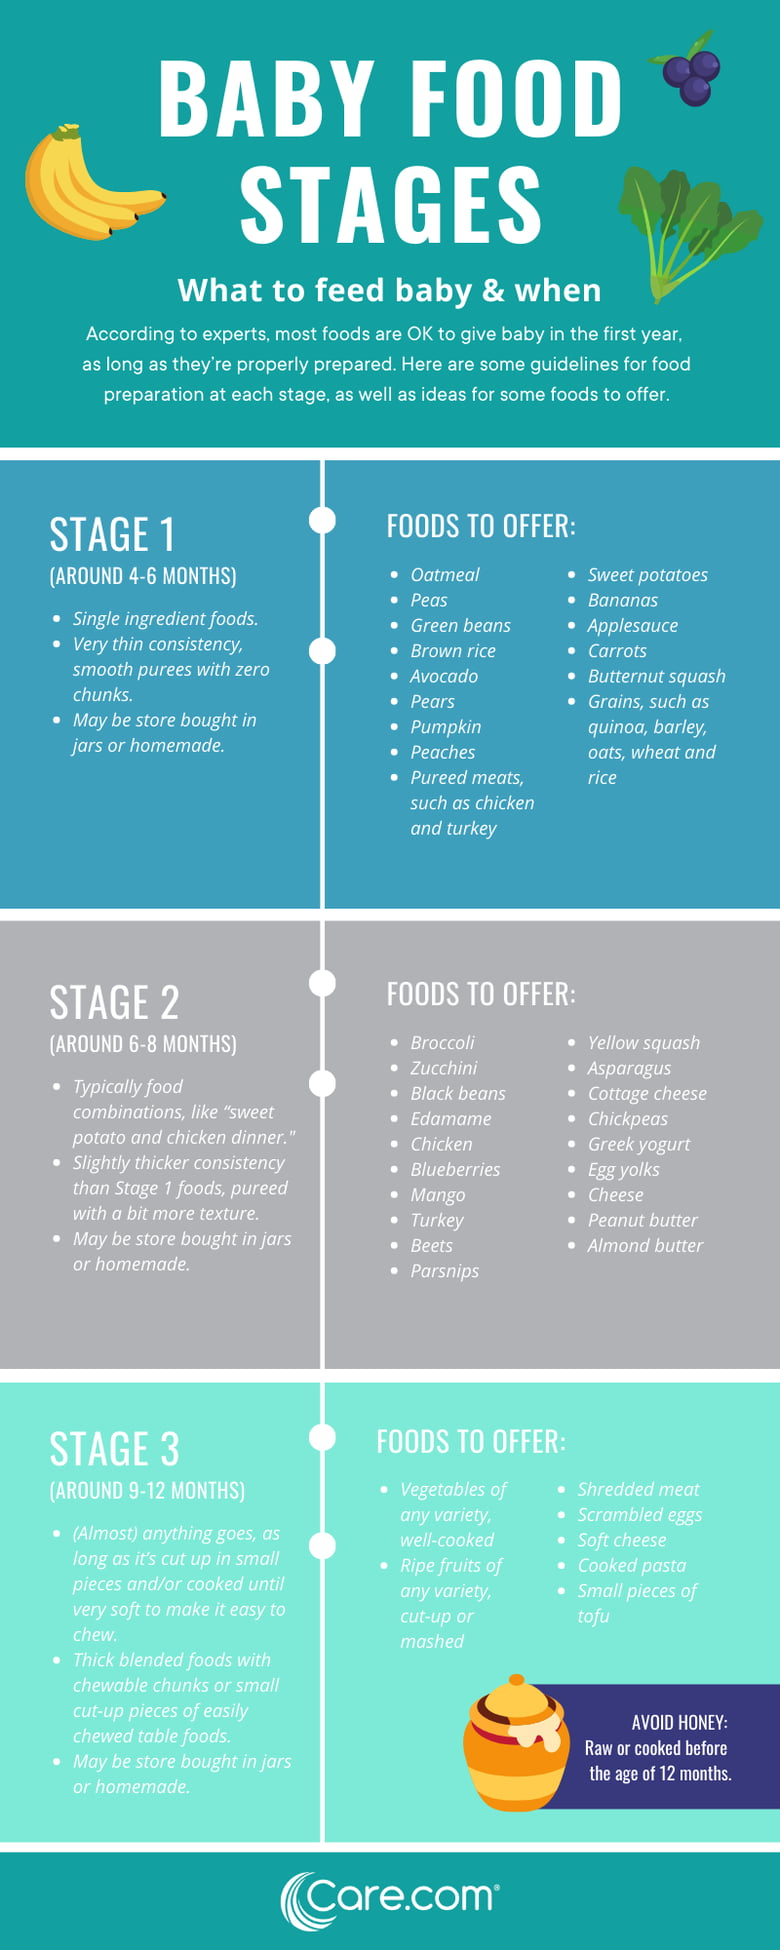 The 3 stages of baby food: What foods and when